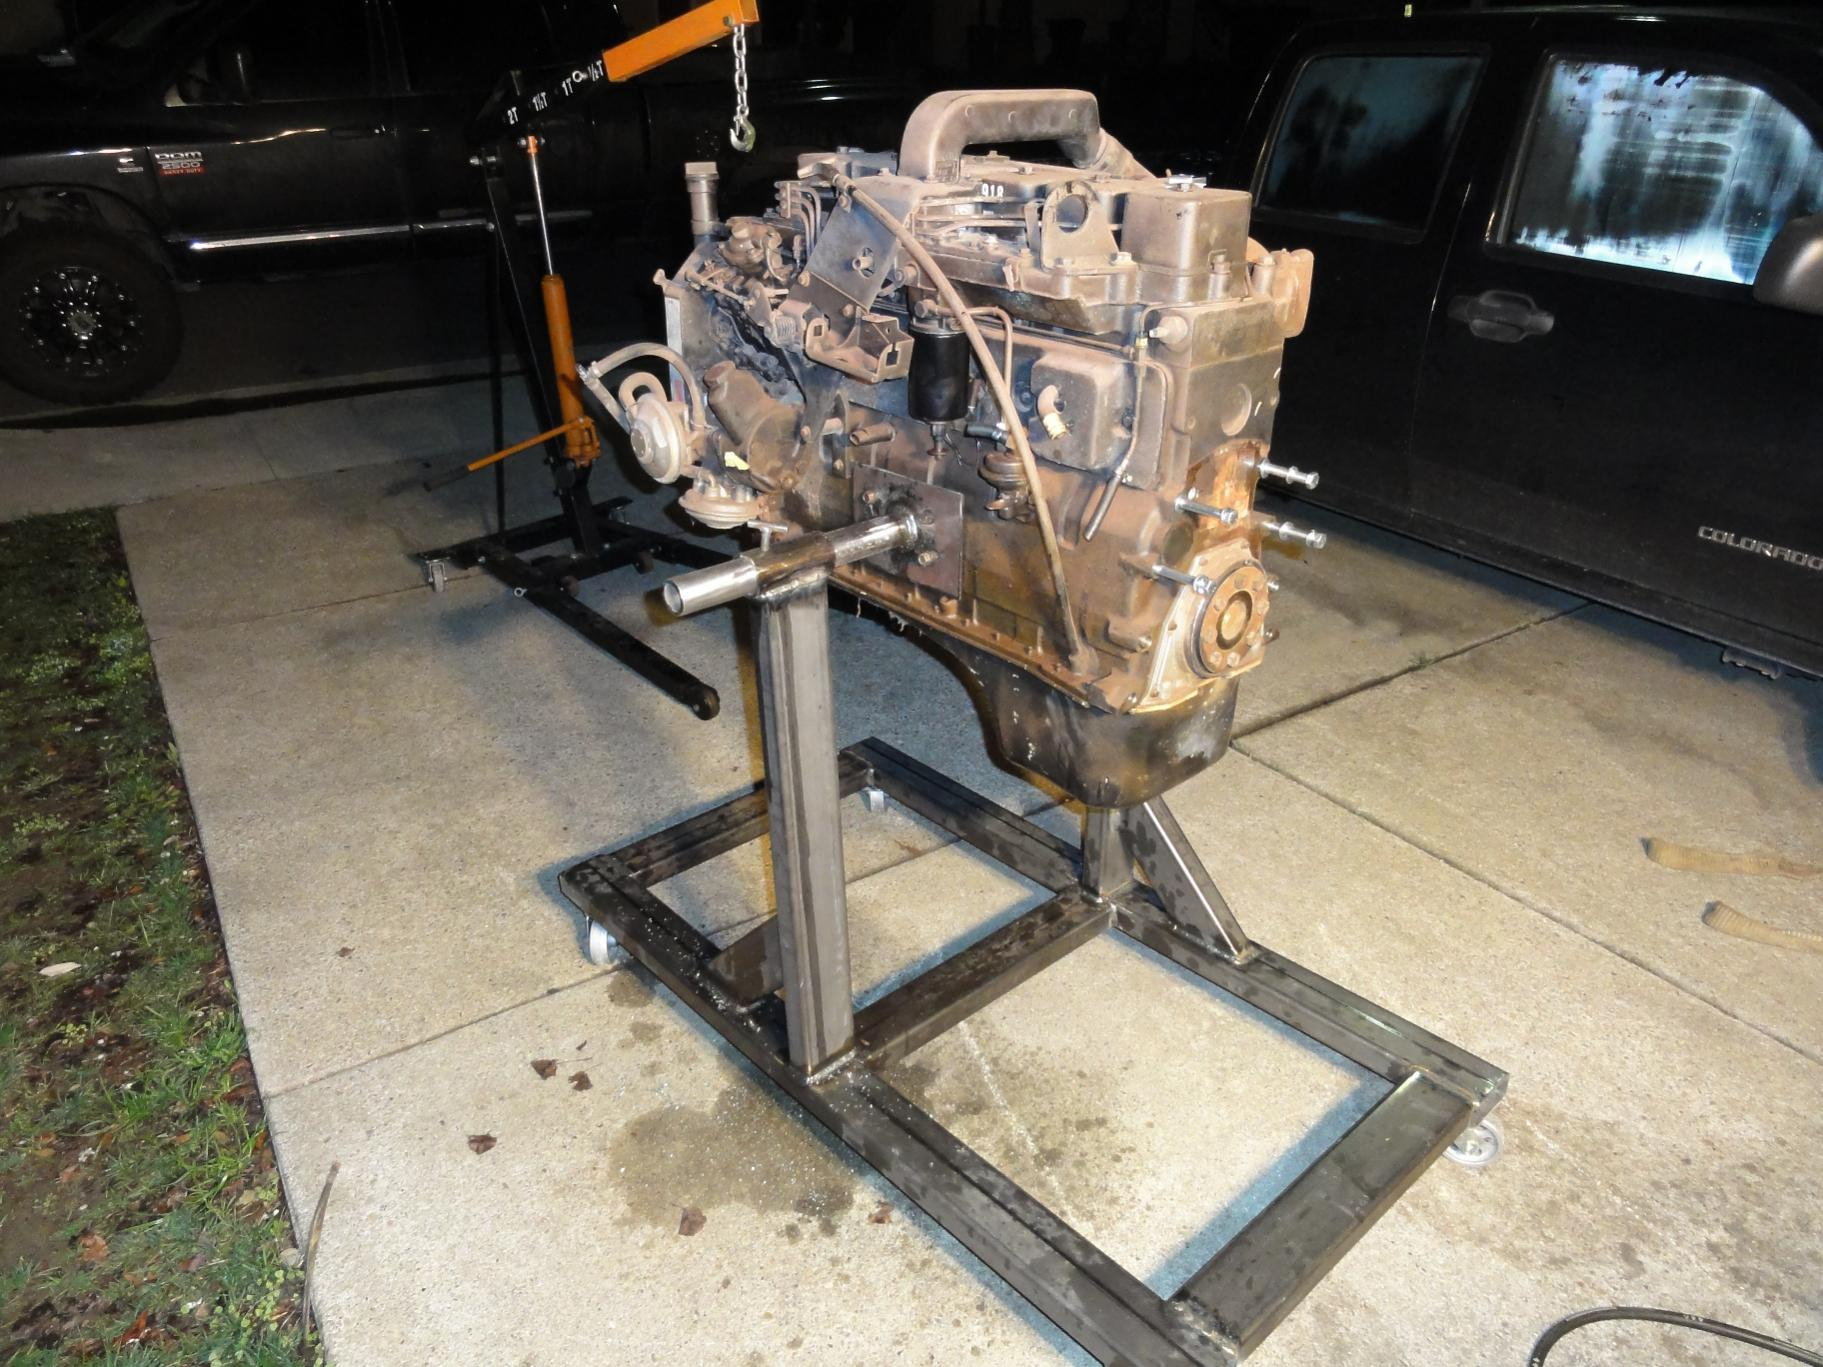 D Chevy Cummins Swap Rock Crawler Project Engine Stand on Chevy Engine Fan